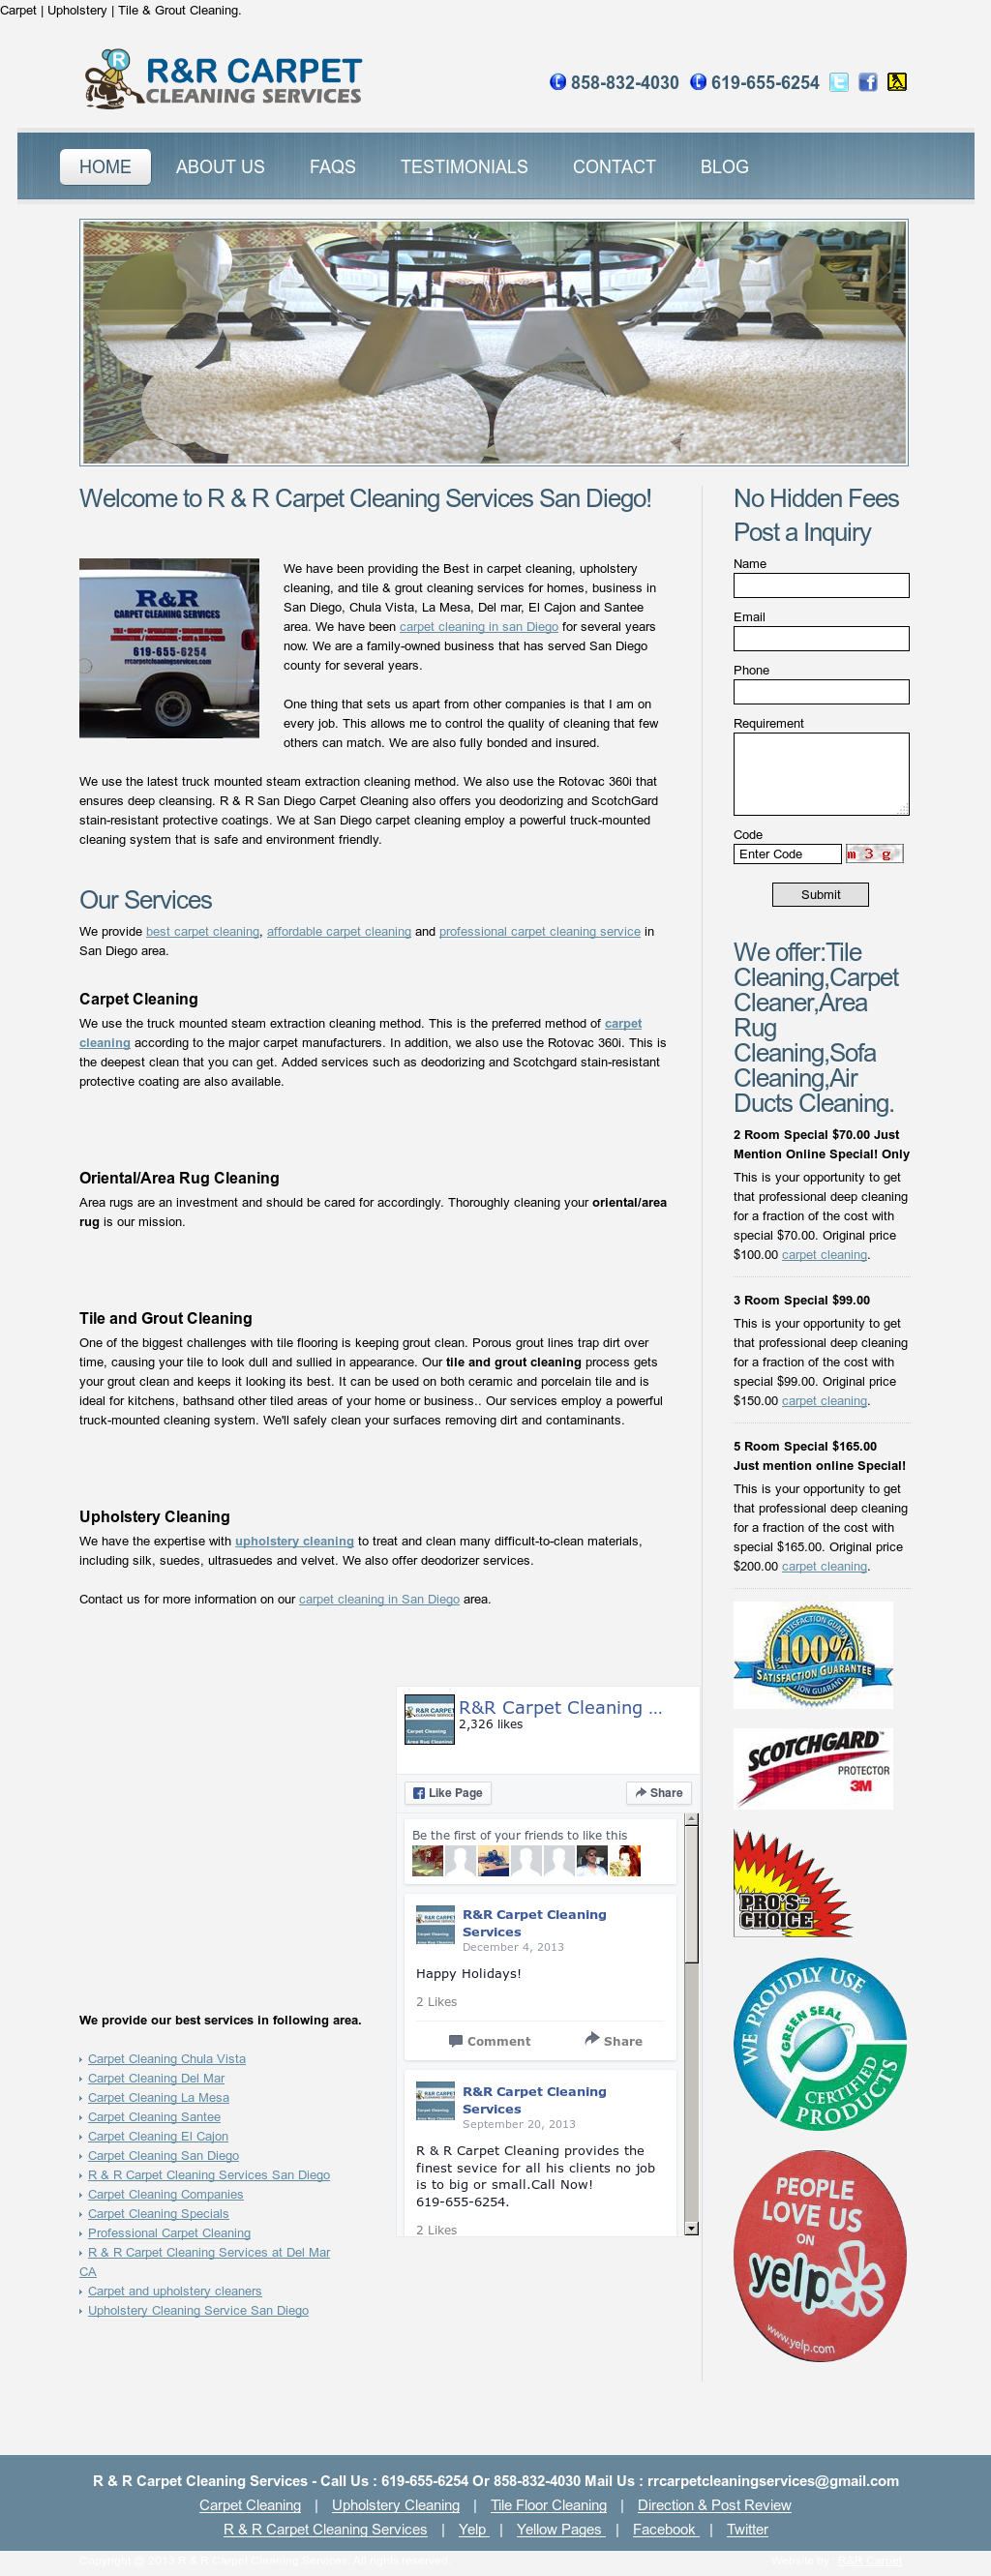 R & R Carpet Cleaning Services Competitors, Revenue and Employees - Owler Company Profile